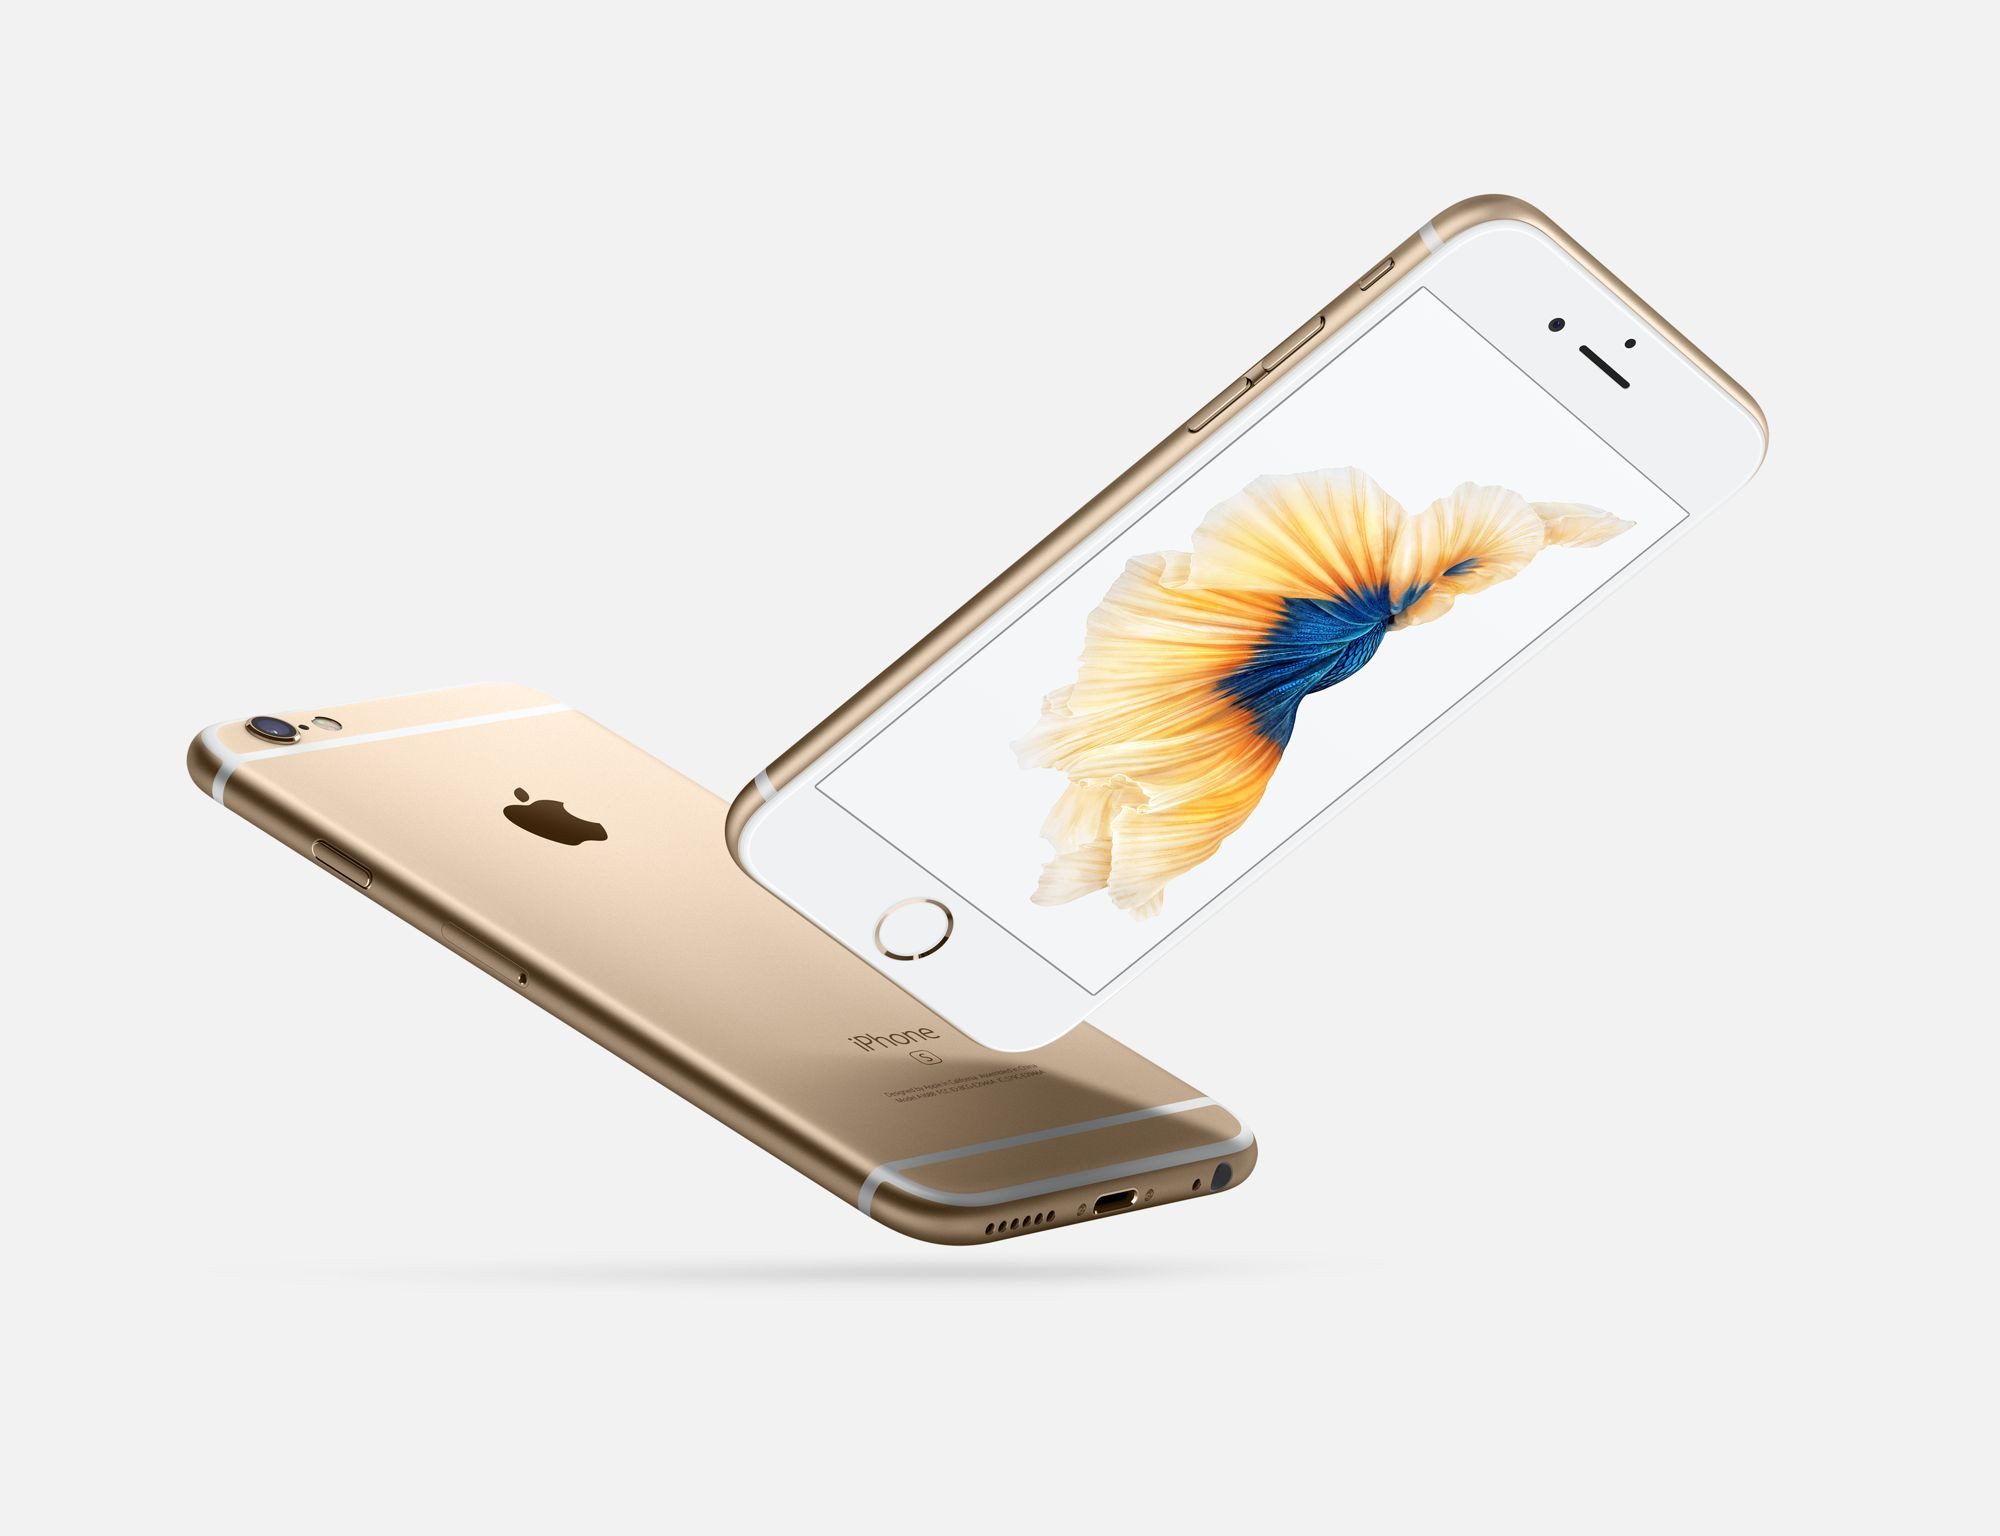 1441828558_apple-iphone-6s-all-the-official-images-2.jpg